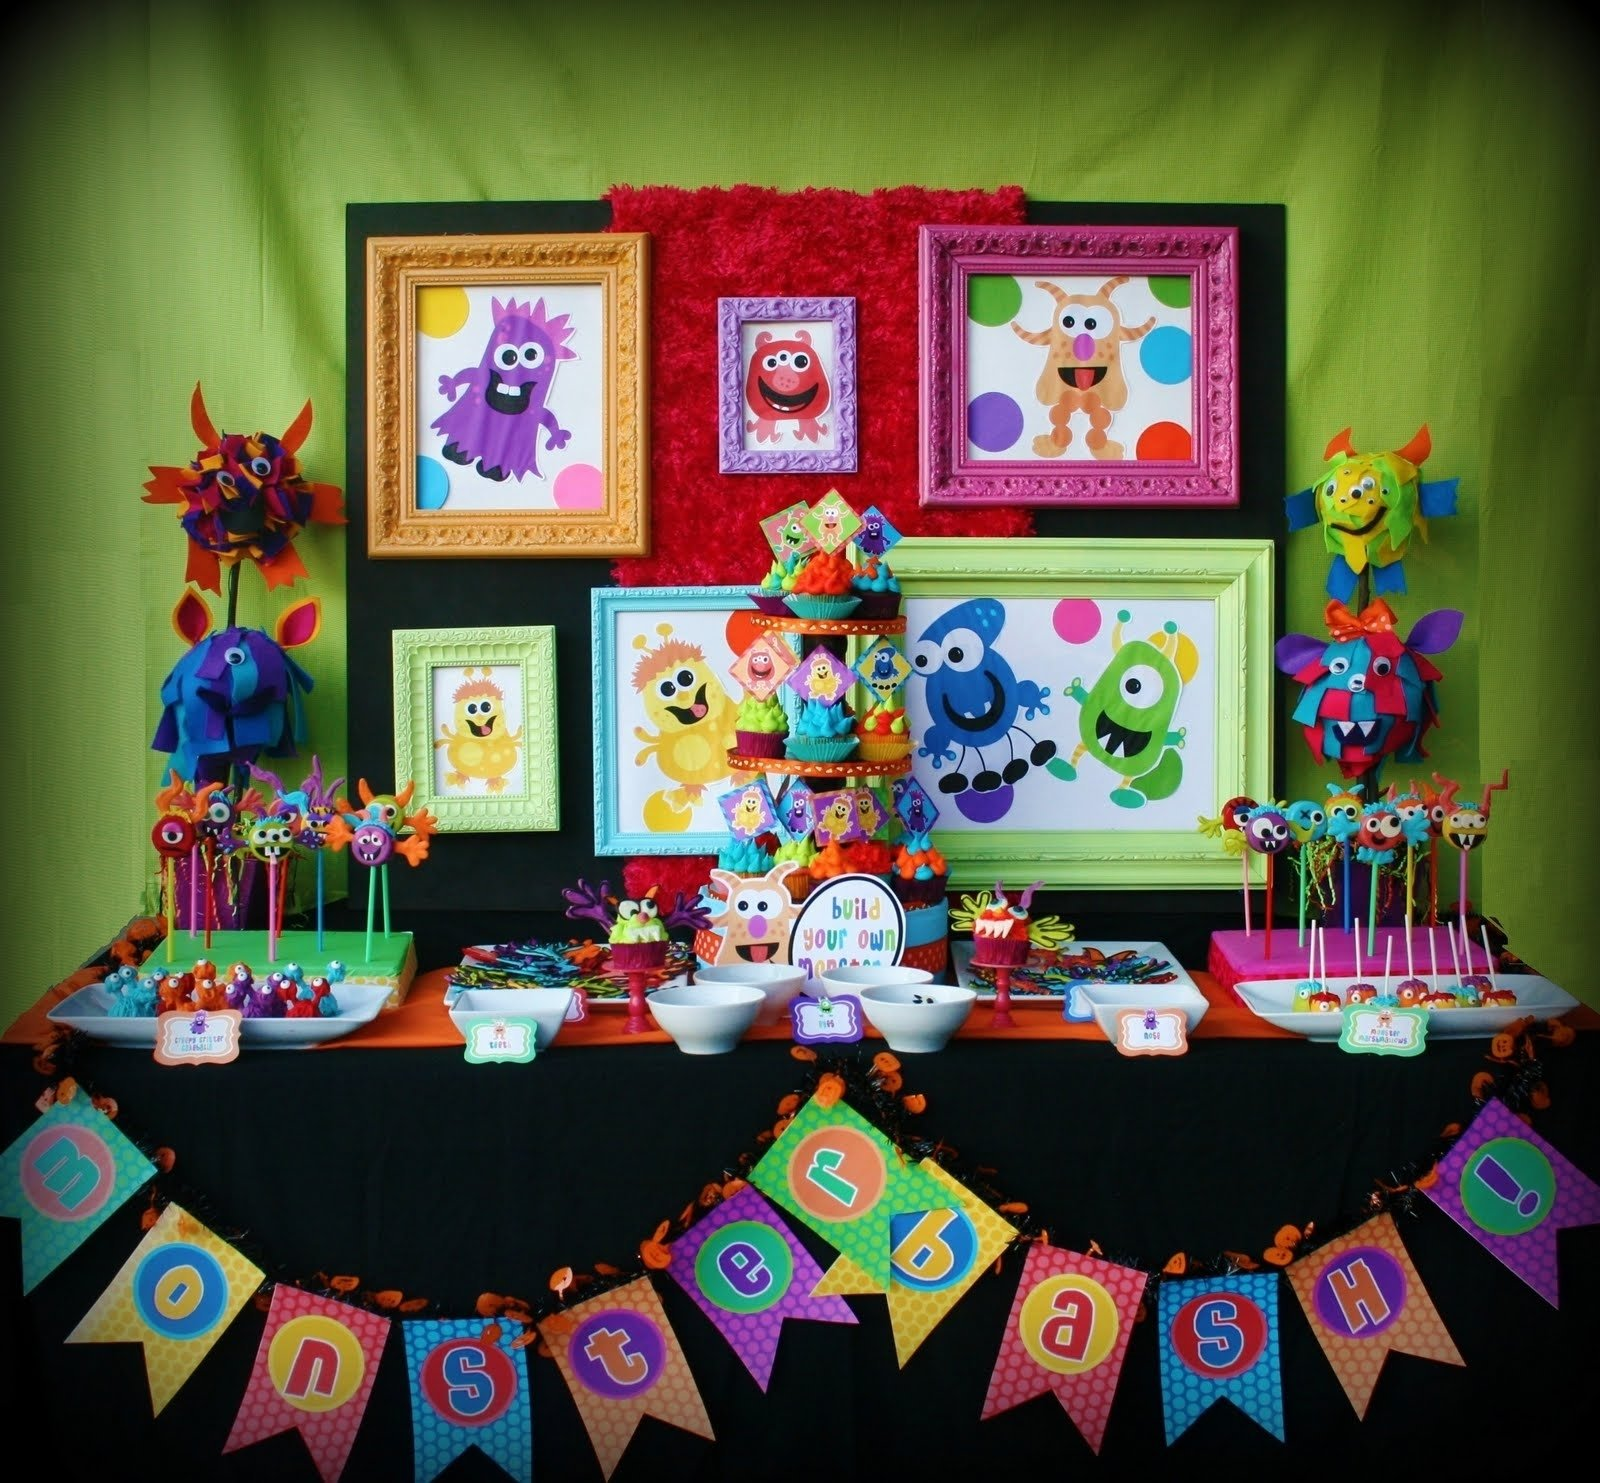 10 Stylish Birthday Party Ideas For Kids 50 awesome boys birthday party ideas i heart naptime 62 2020